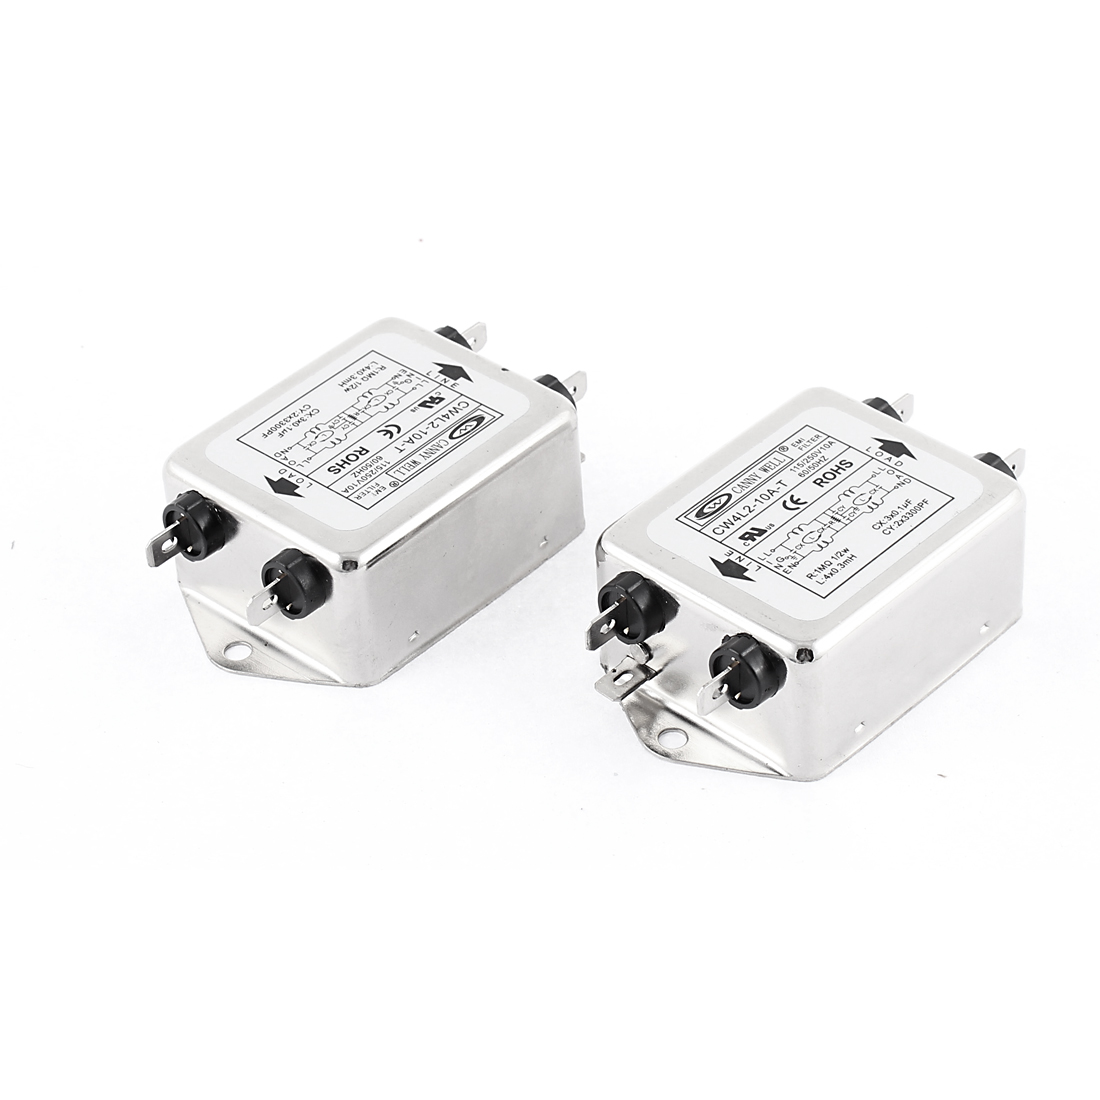 2pcs CW4L2-10A-T 115V/250V 60/50Hz 10A AC Power Single Phase Noise Line EMI Filter